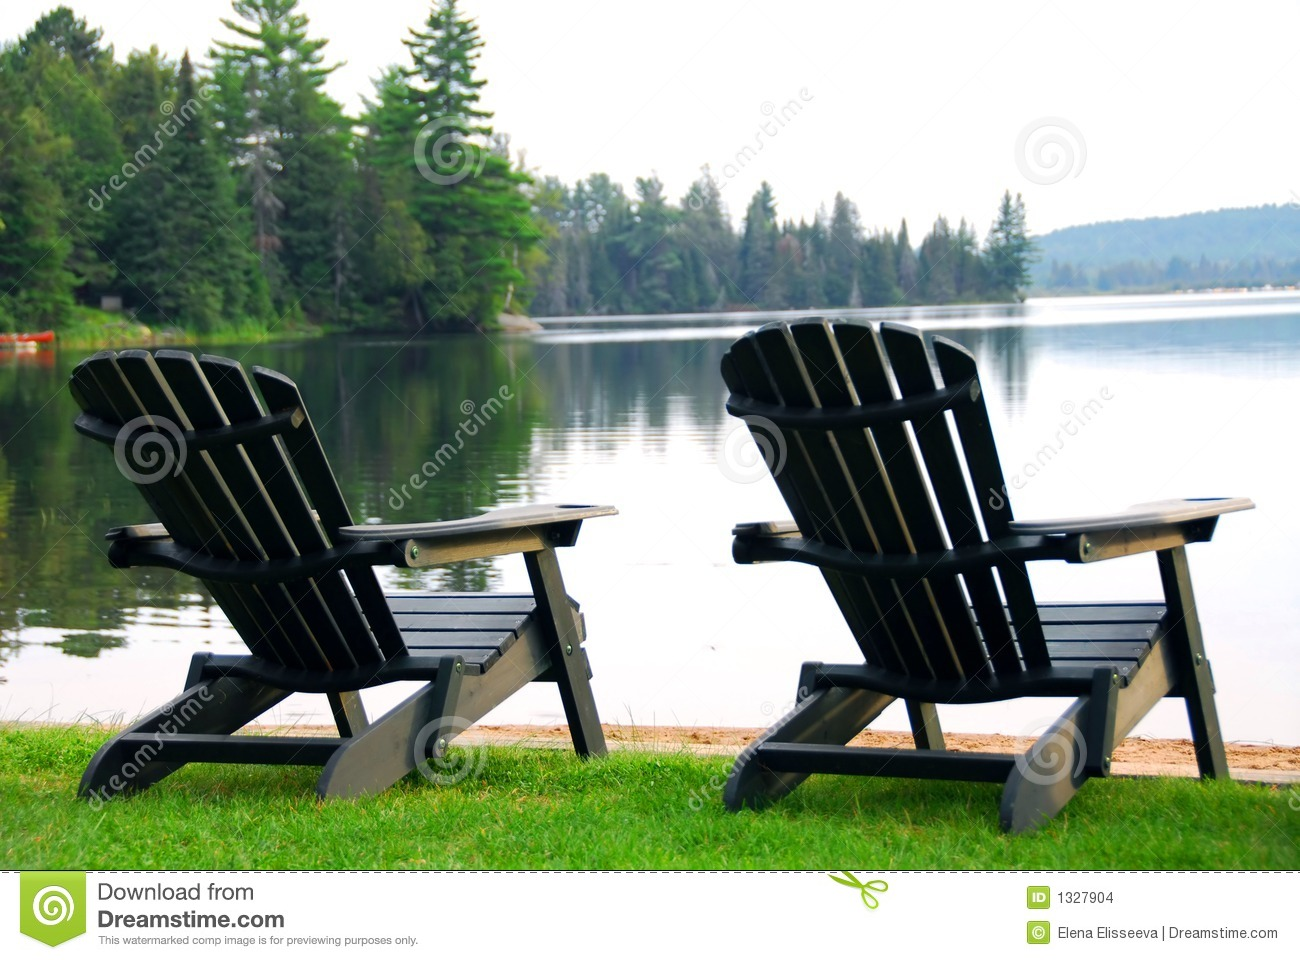 plans for adirondack chair benefits of stability ball lake beach chairs stock images - image: 1327904